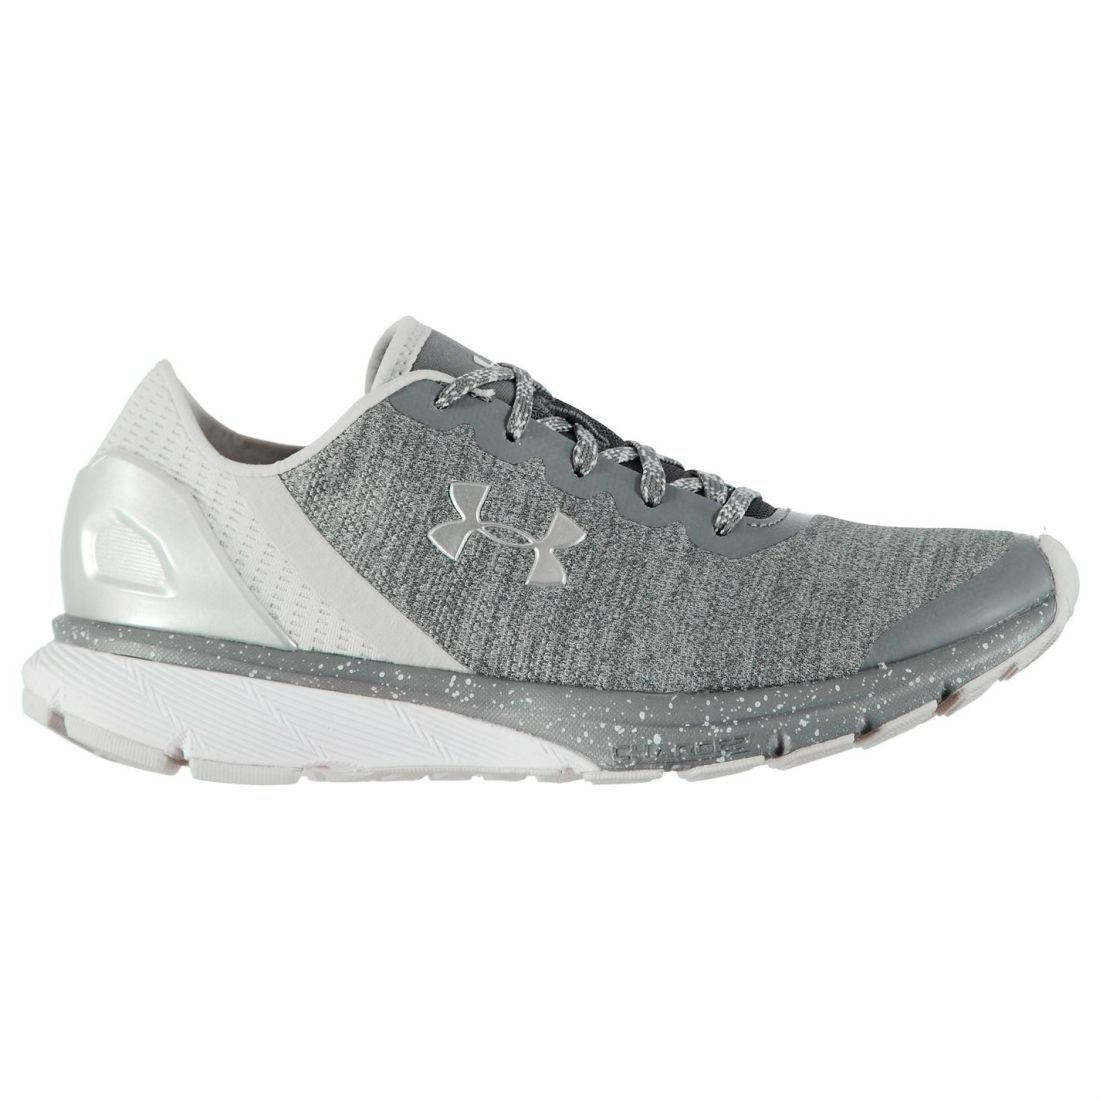 7801ad653cb Details about Under Armour Charged Escape Running Shoes Ladies Runners  Laces Fastened